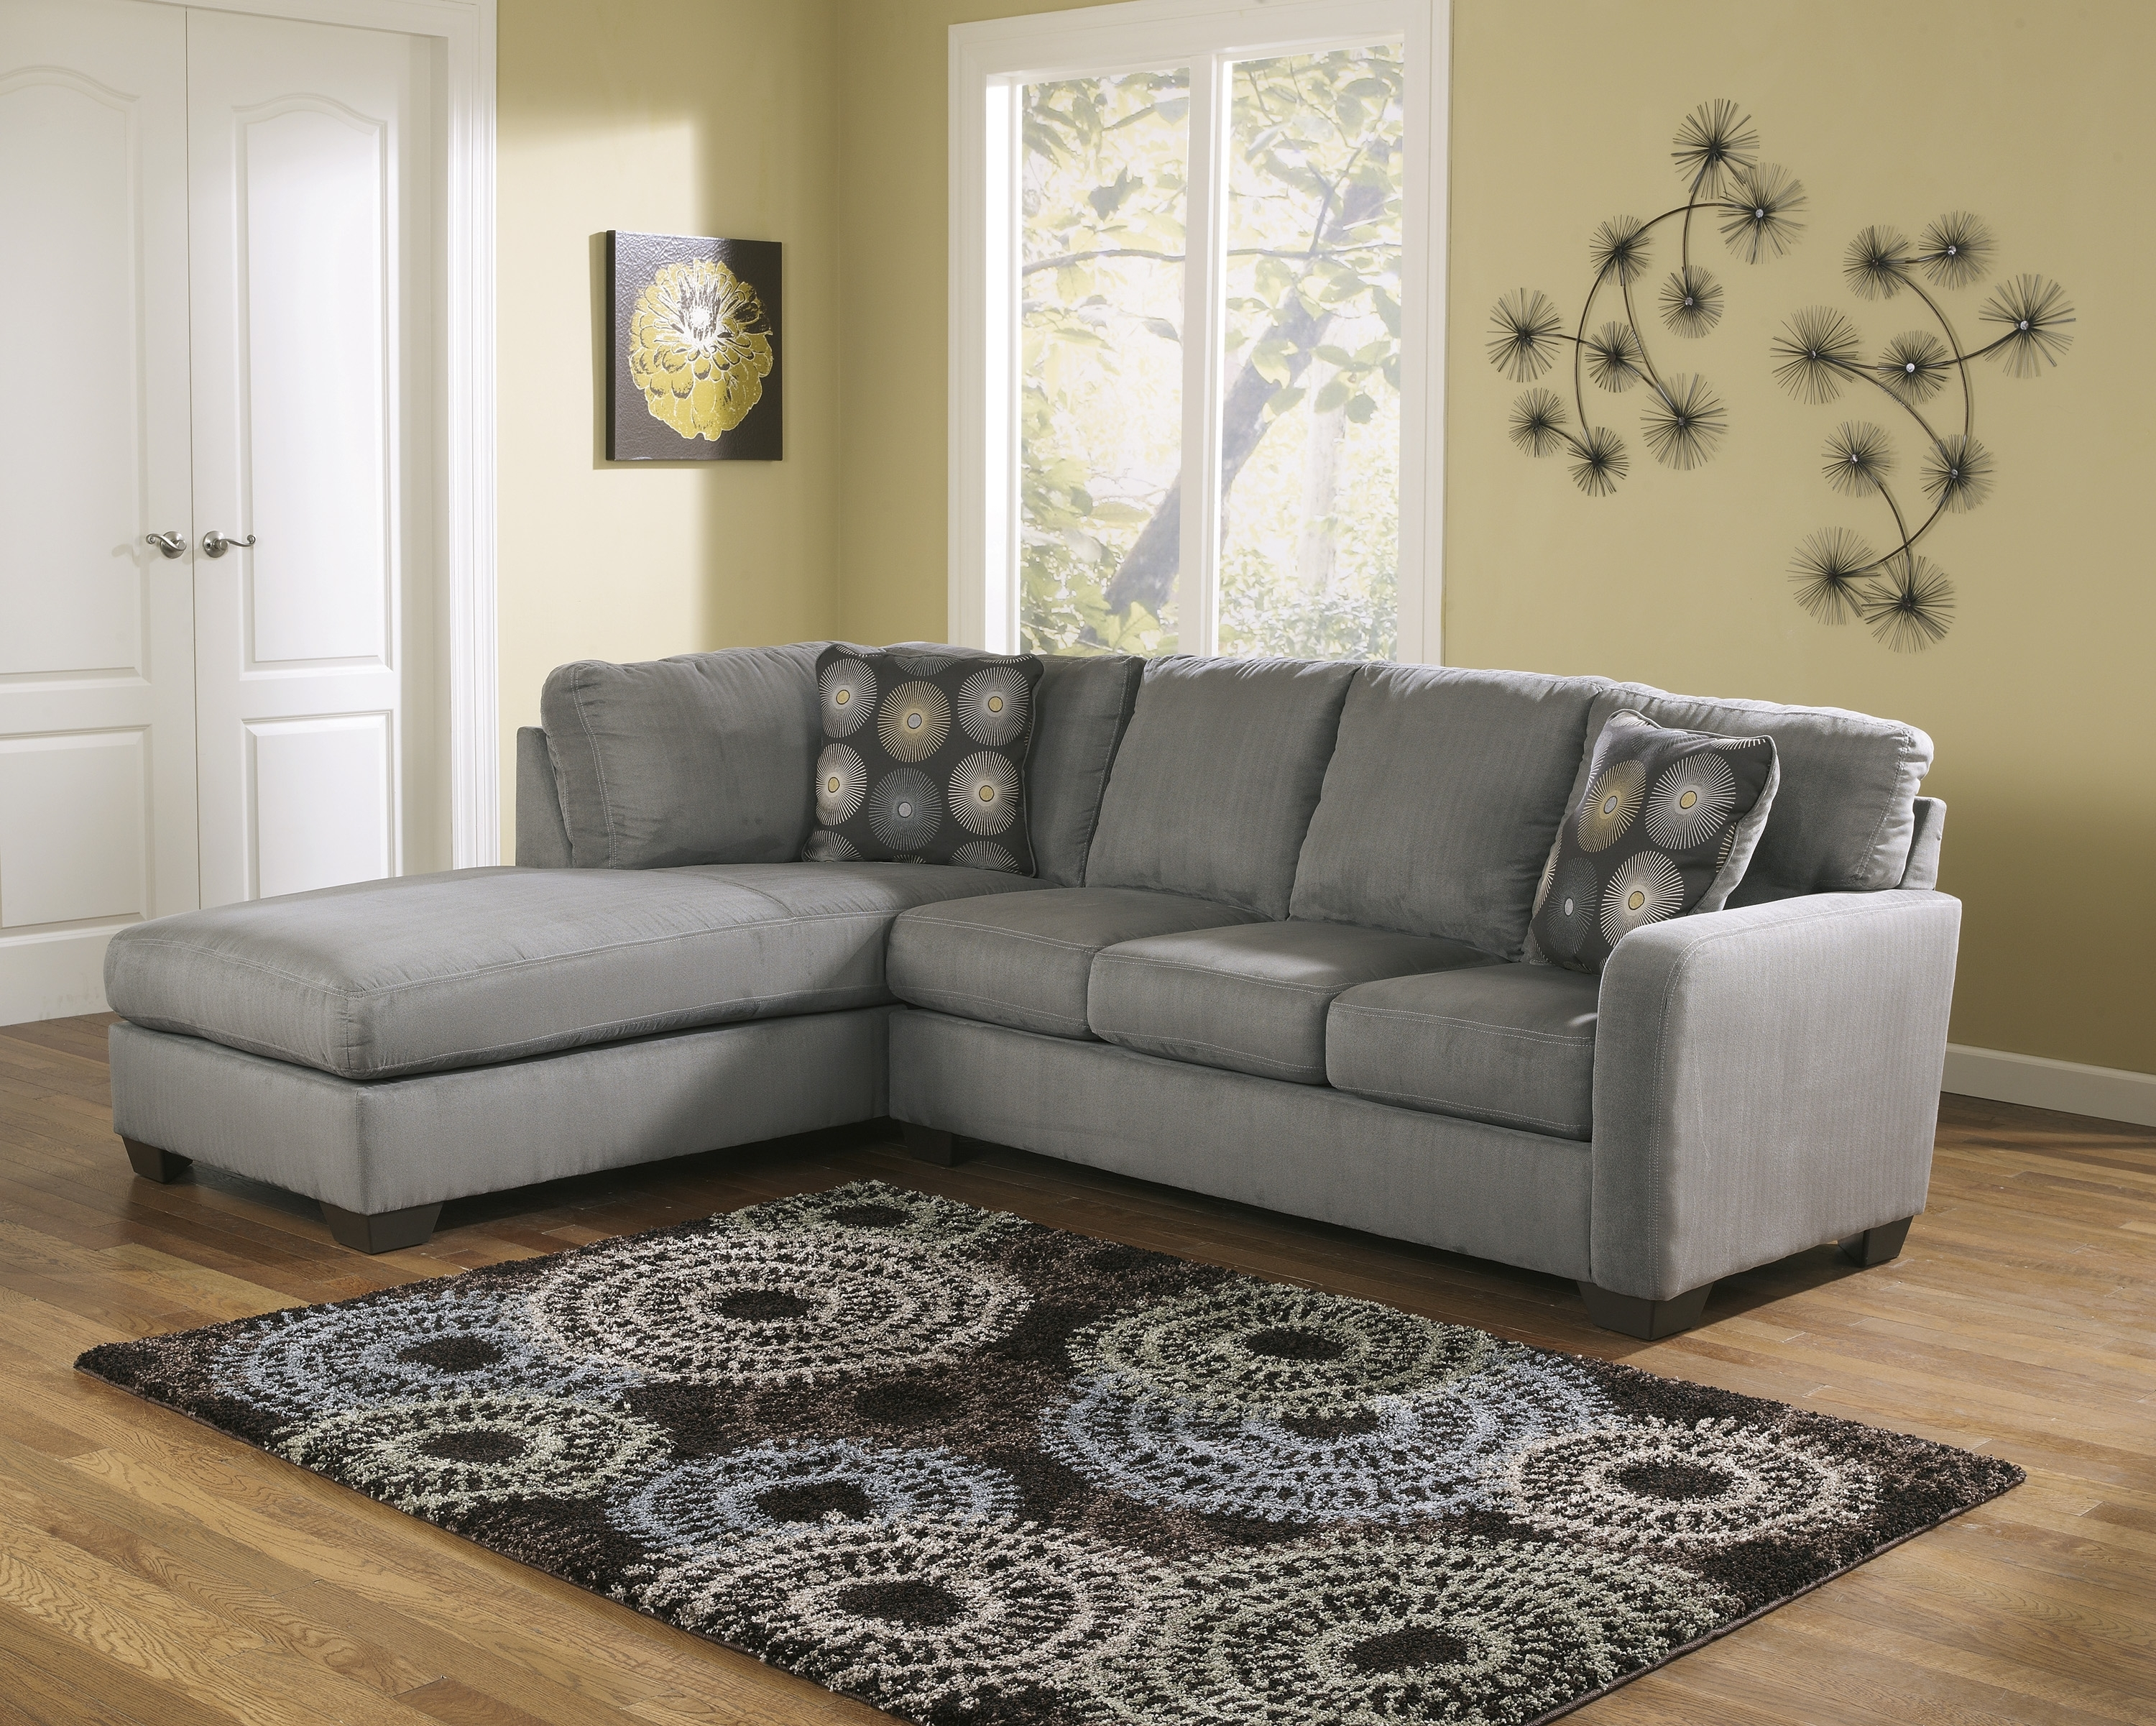 Wichita Ks Sectional Sofas With Most Current Cuisine: Rsfchaisesectionalashley Furniture In Wichita Ks Rsf (View 5 of 15)